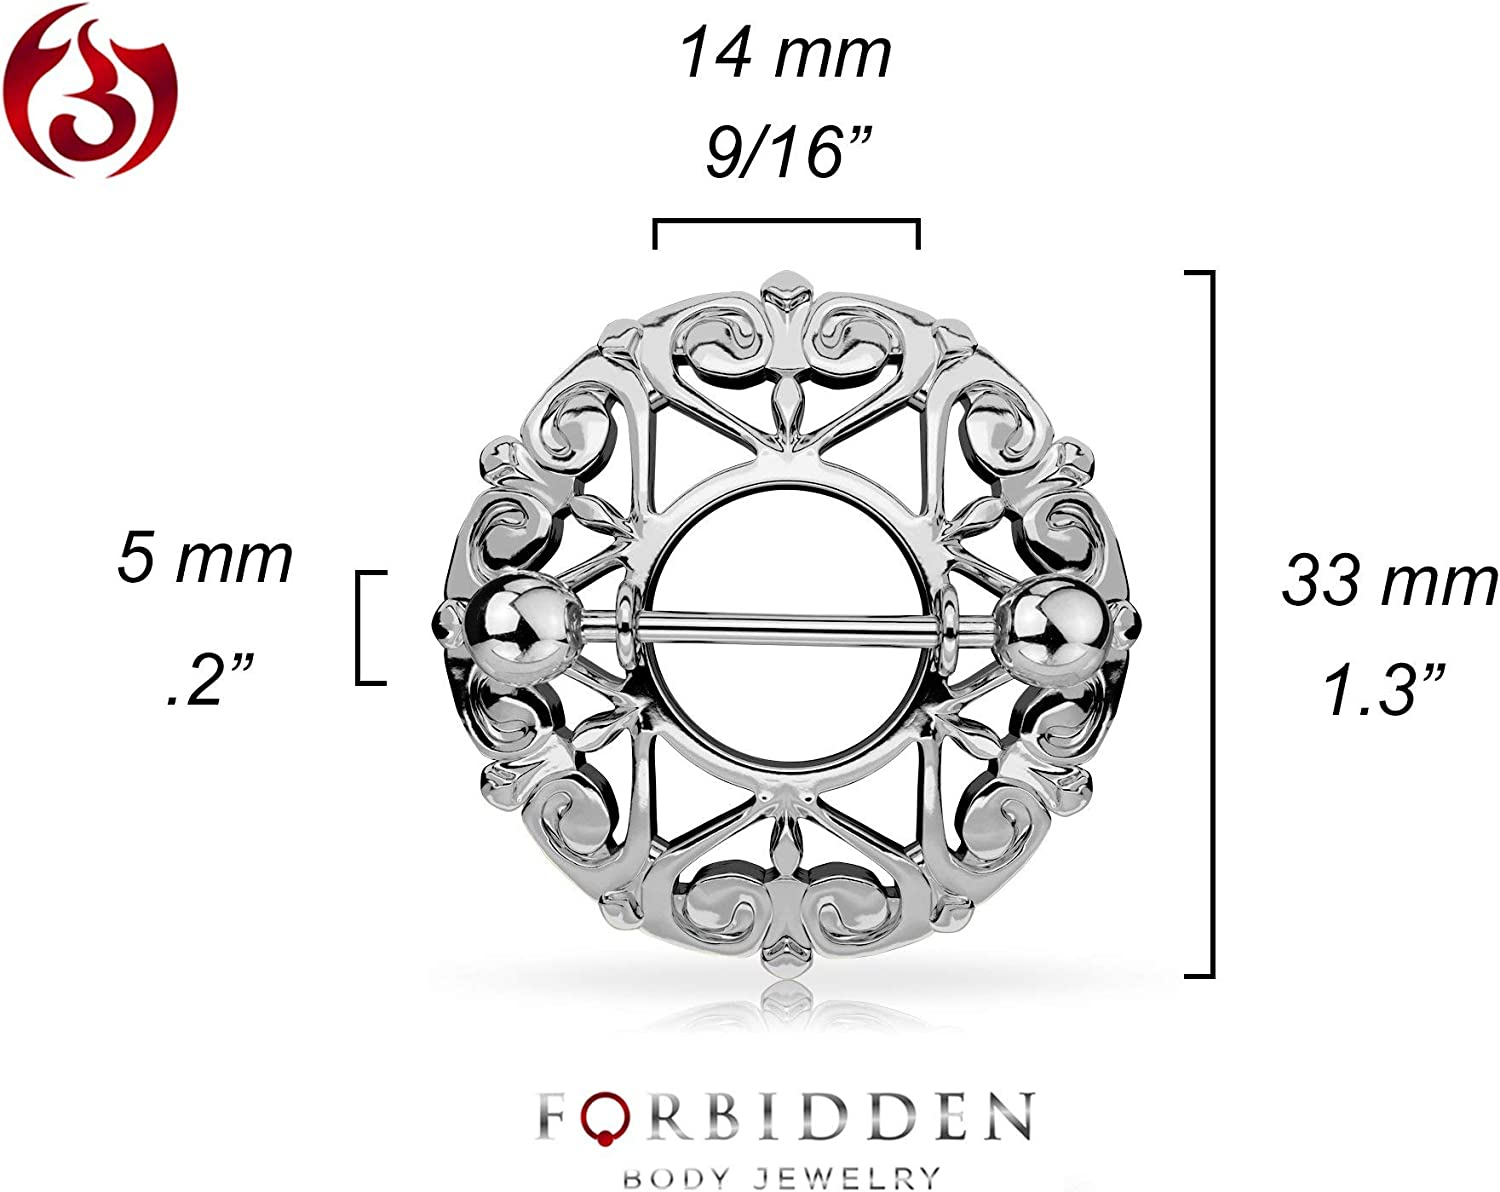 Forbidden Body Jewelry Pair of Surgical Steel Sexy Heart Nipple Piercing Shields, 9/16 Inch Barbells